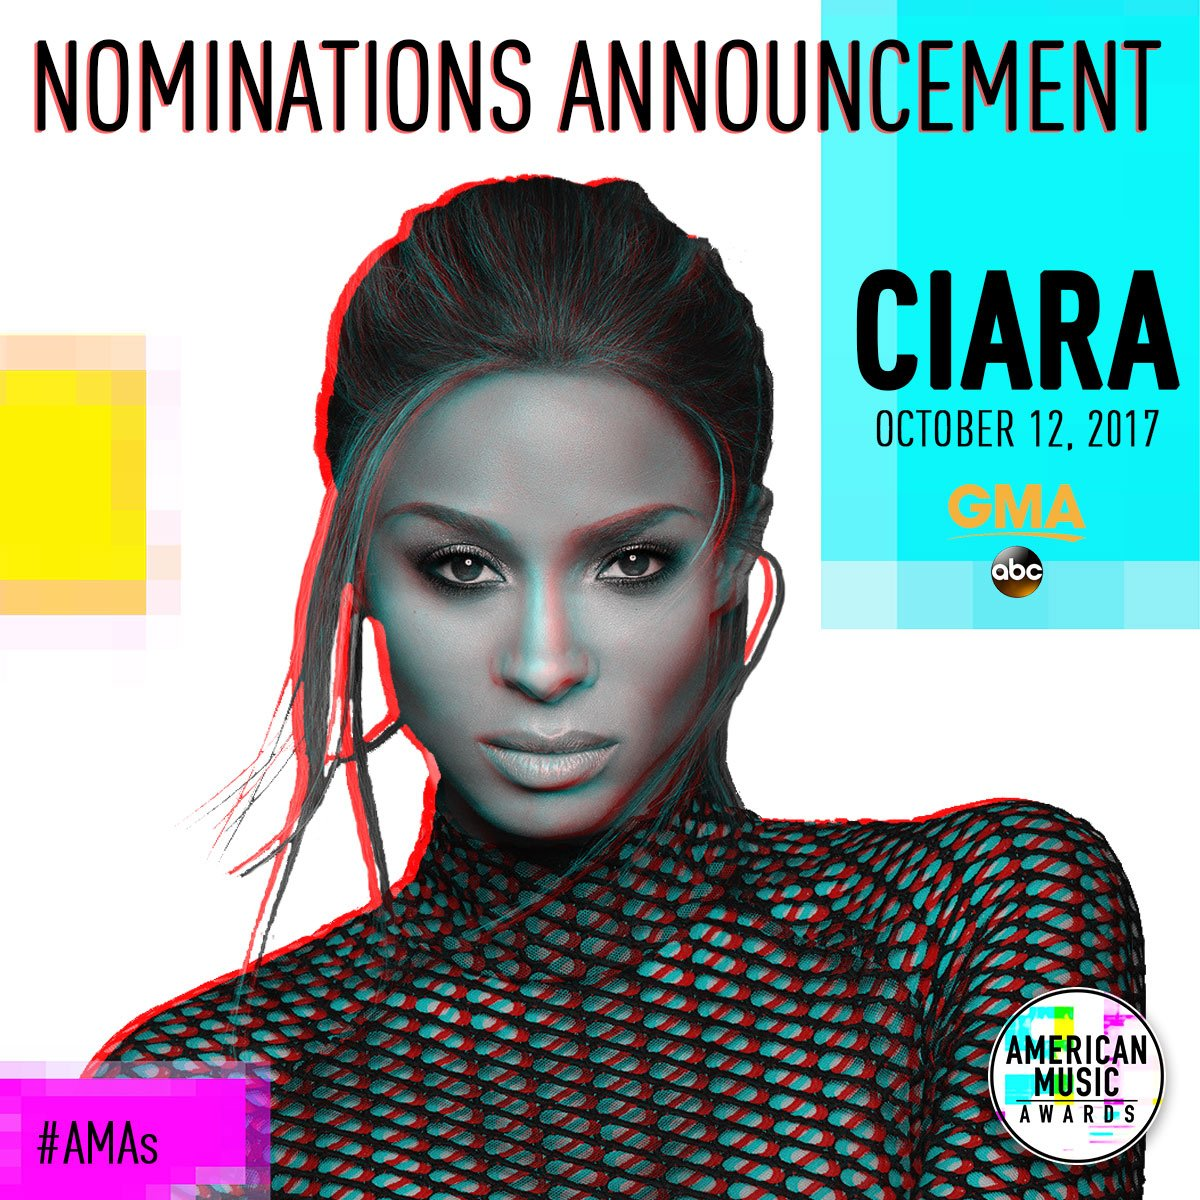 THIS MORNING: @ciara brings us the @AMAs nominations LIVE in Times Square, only on @GMA! https://t.co/oMq7FyaP1g